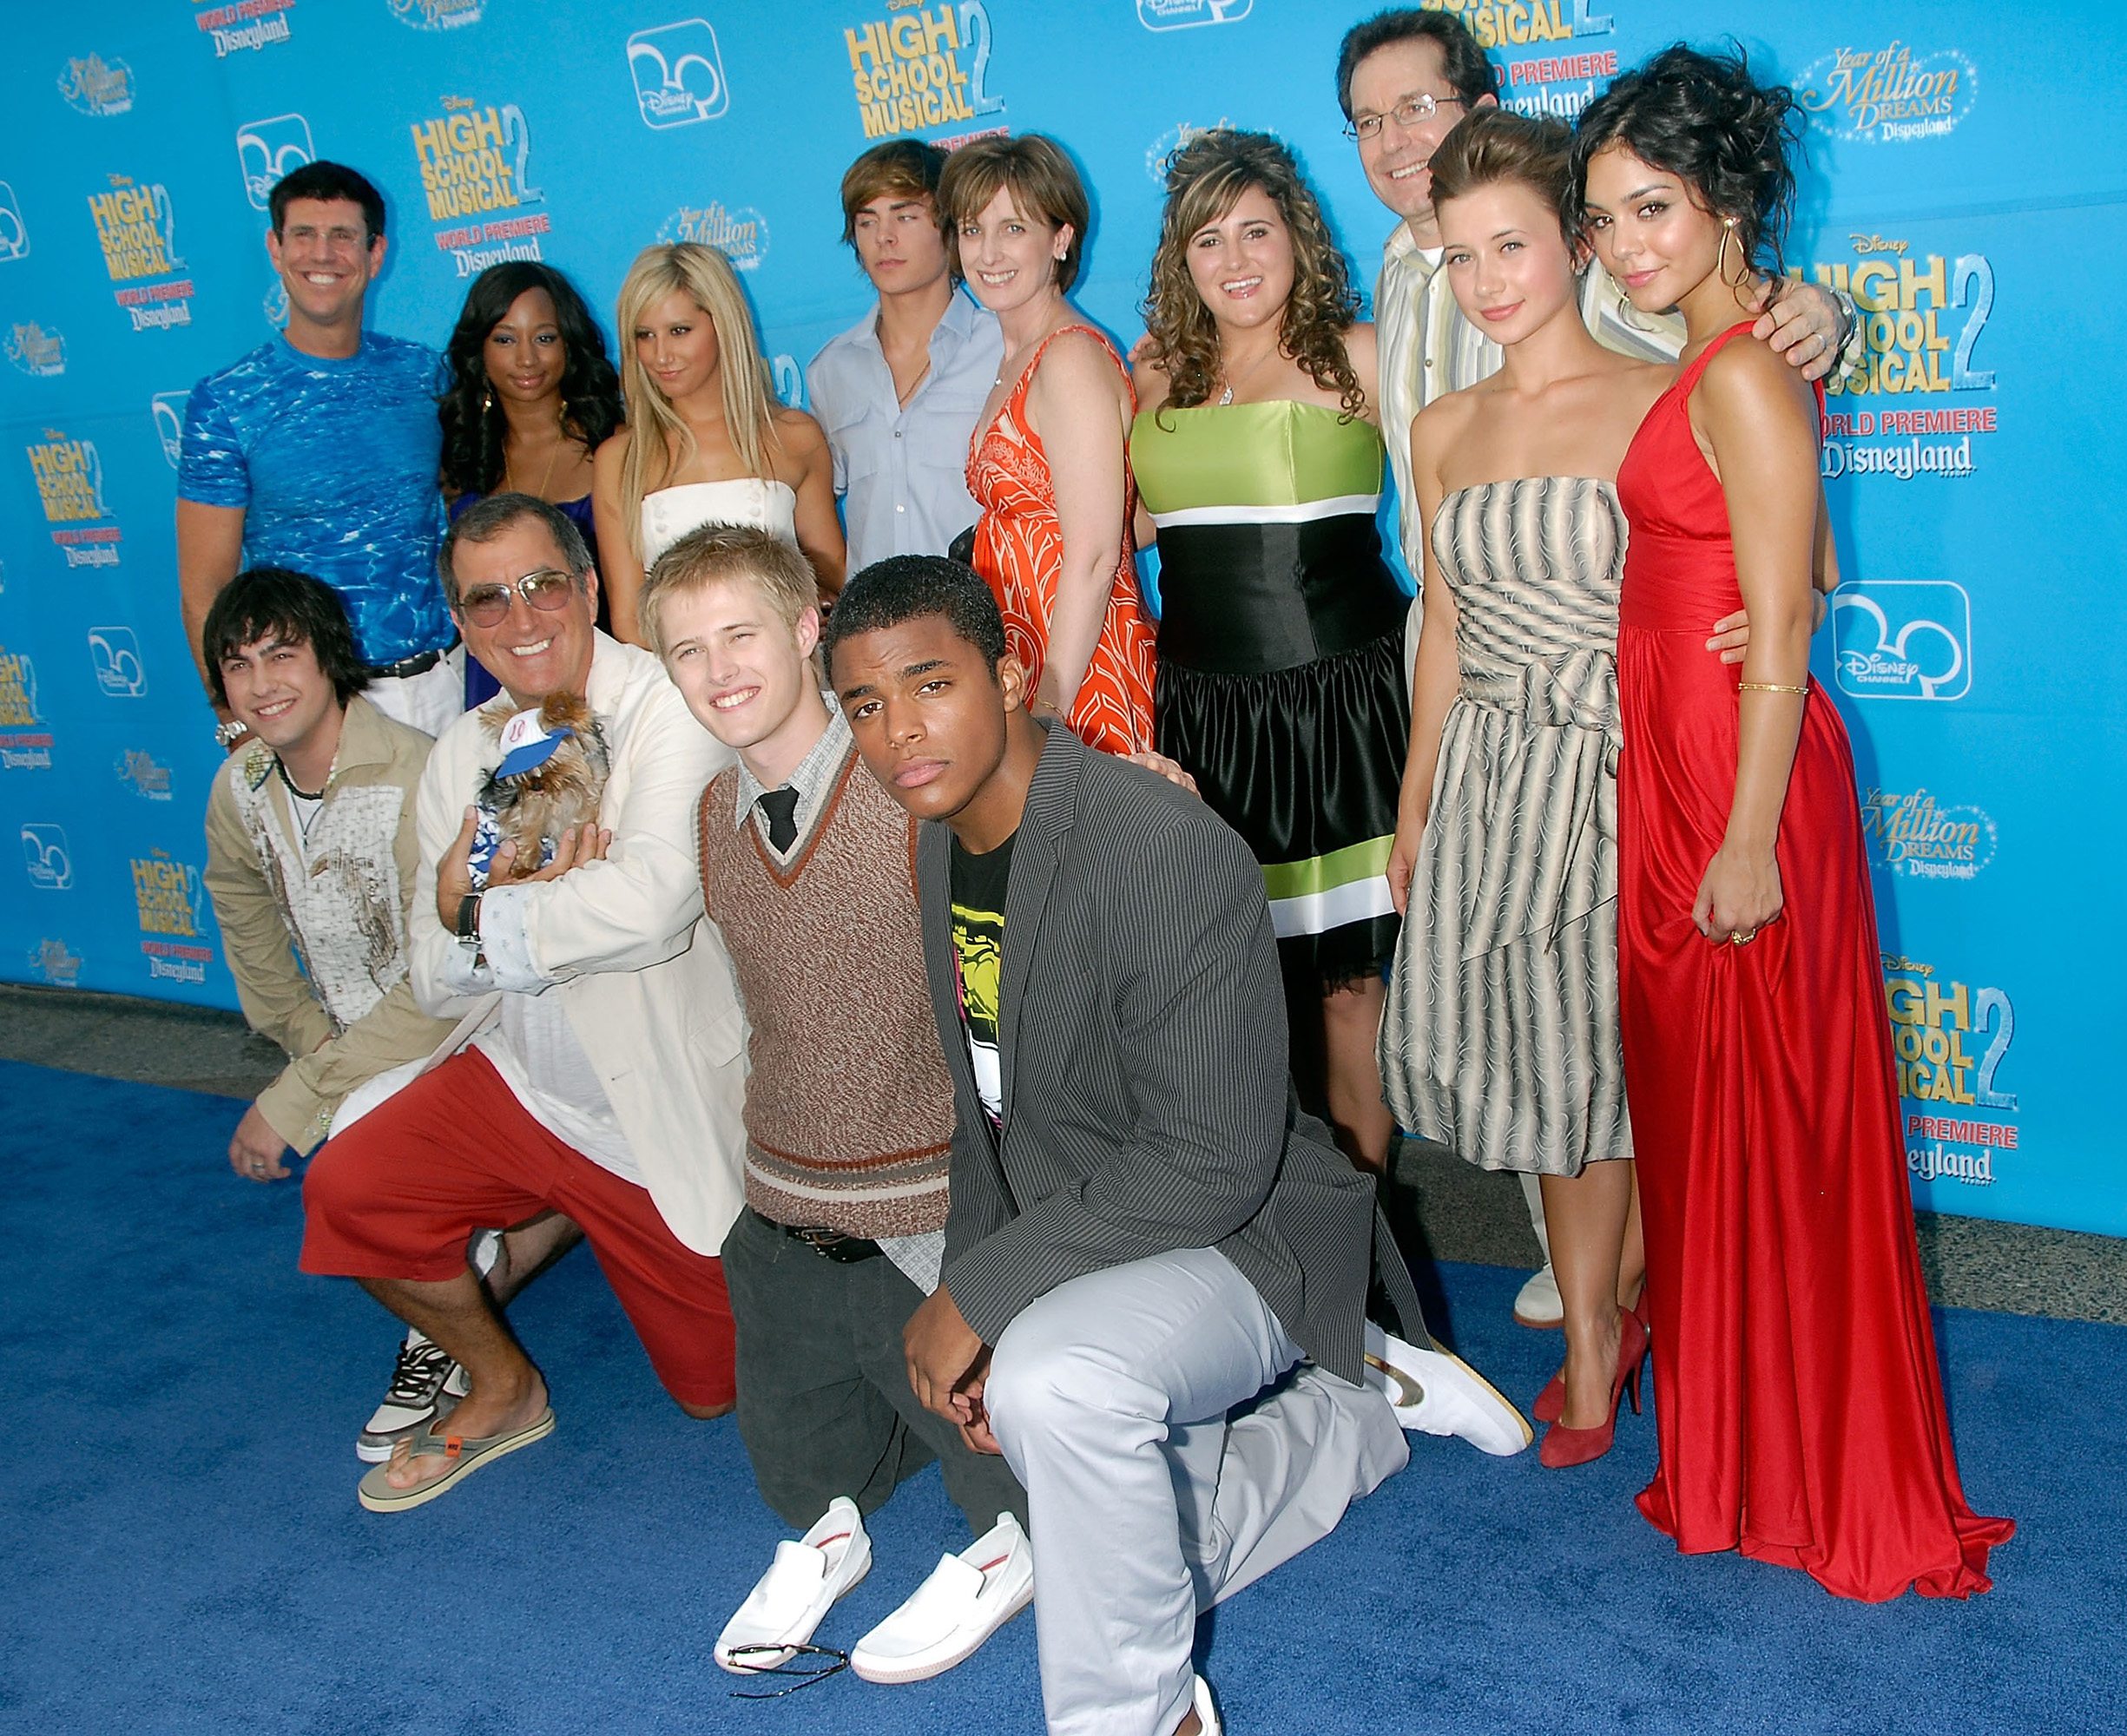 Relive the High School Musical 2 Premiere Red Carpet